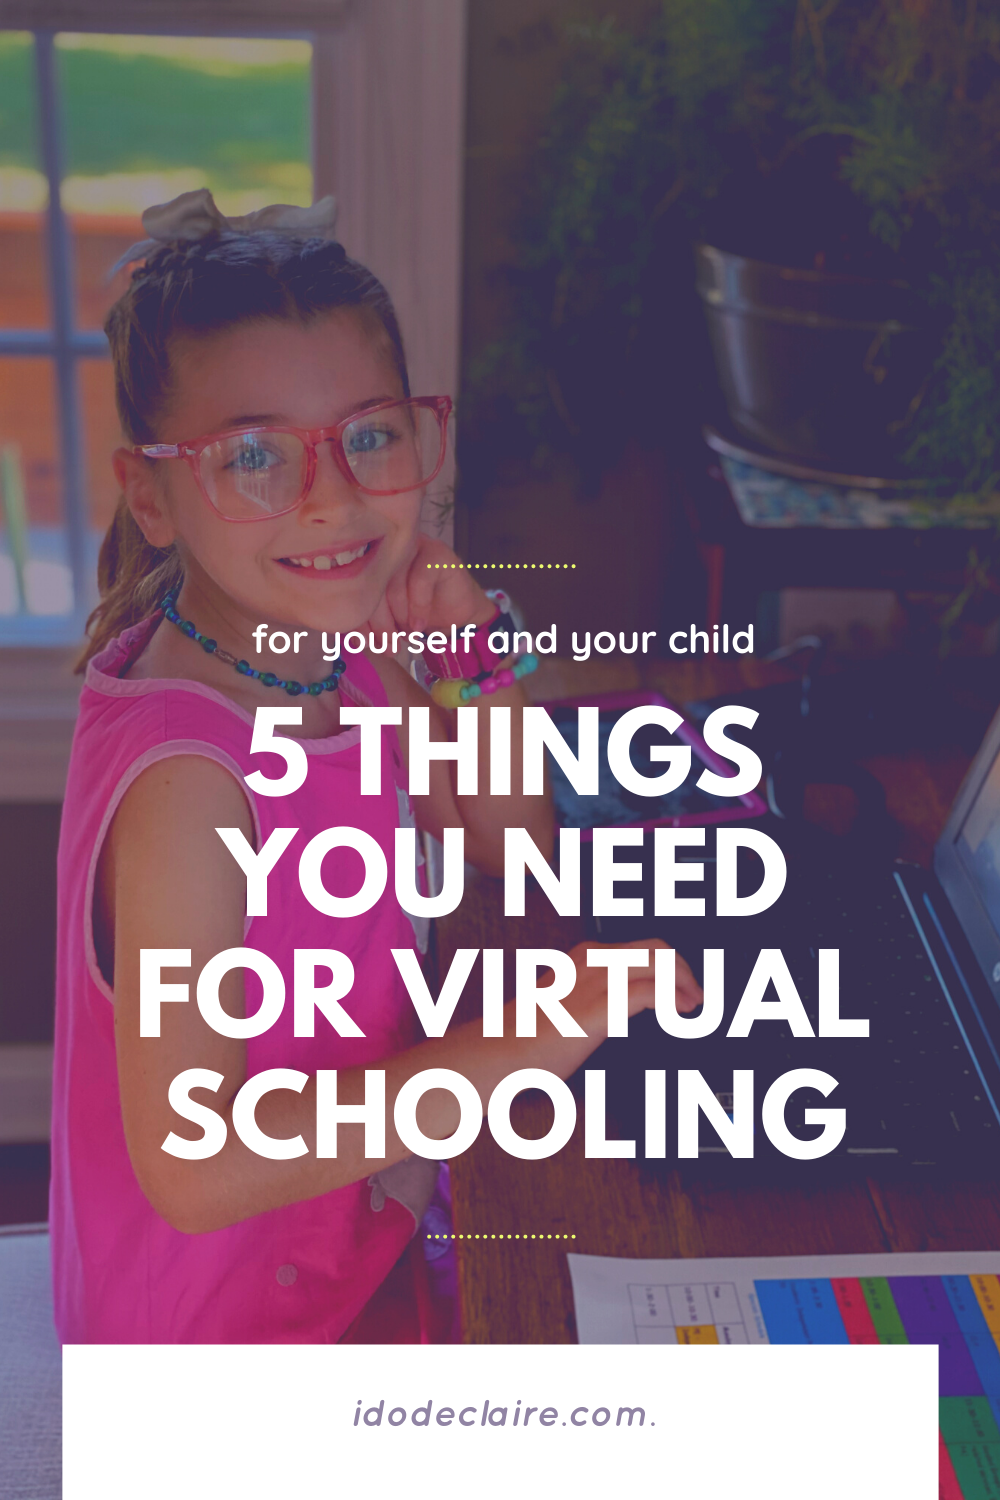 5 Things You Need for Virtual Schooling (for yourself and your child)